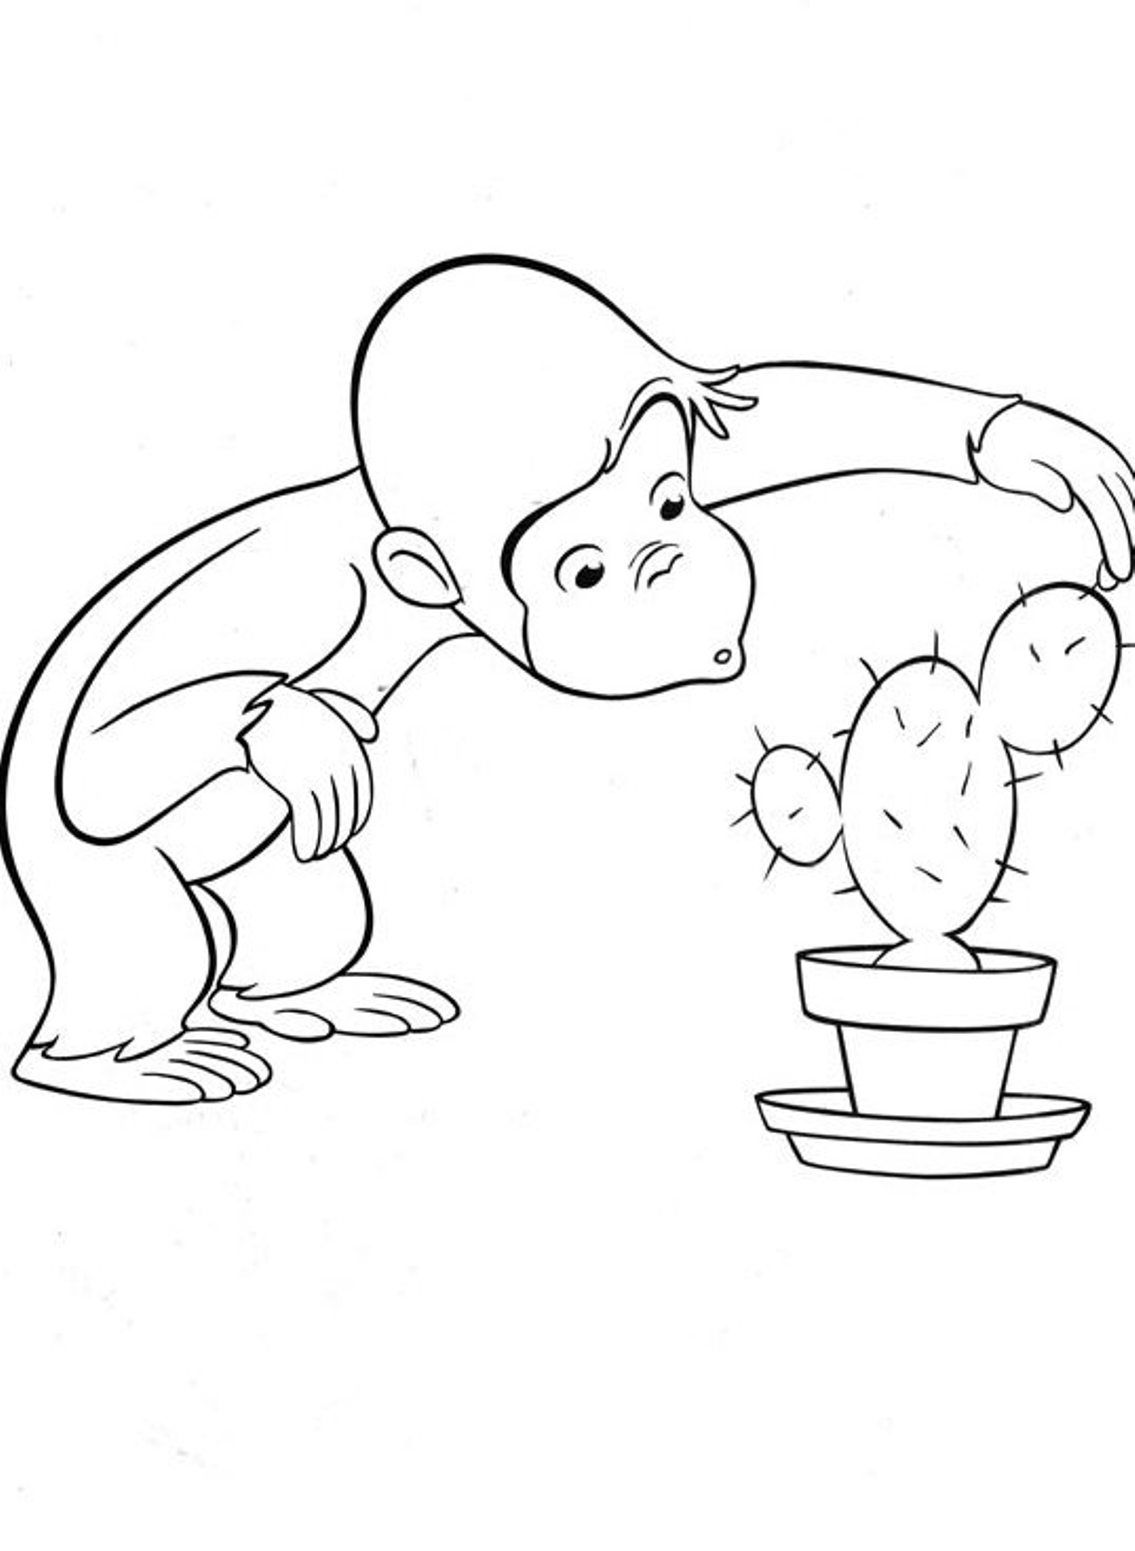 curious george coloring coloring pages cool2bkids curious george coloring coloring curious george